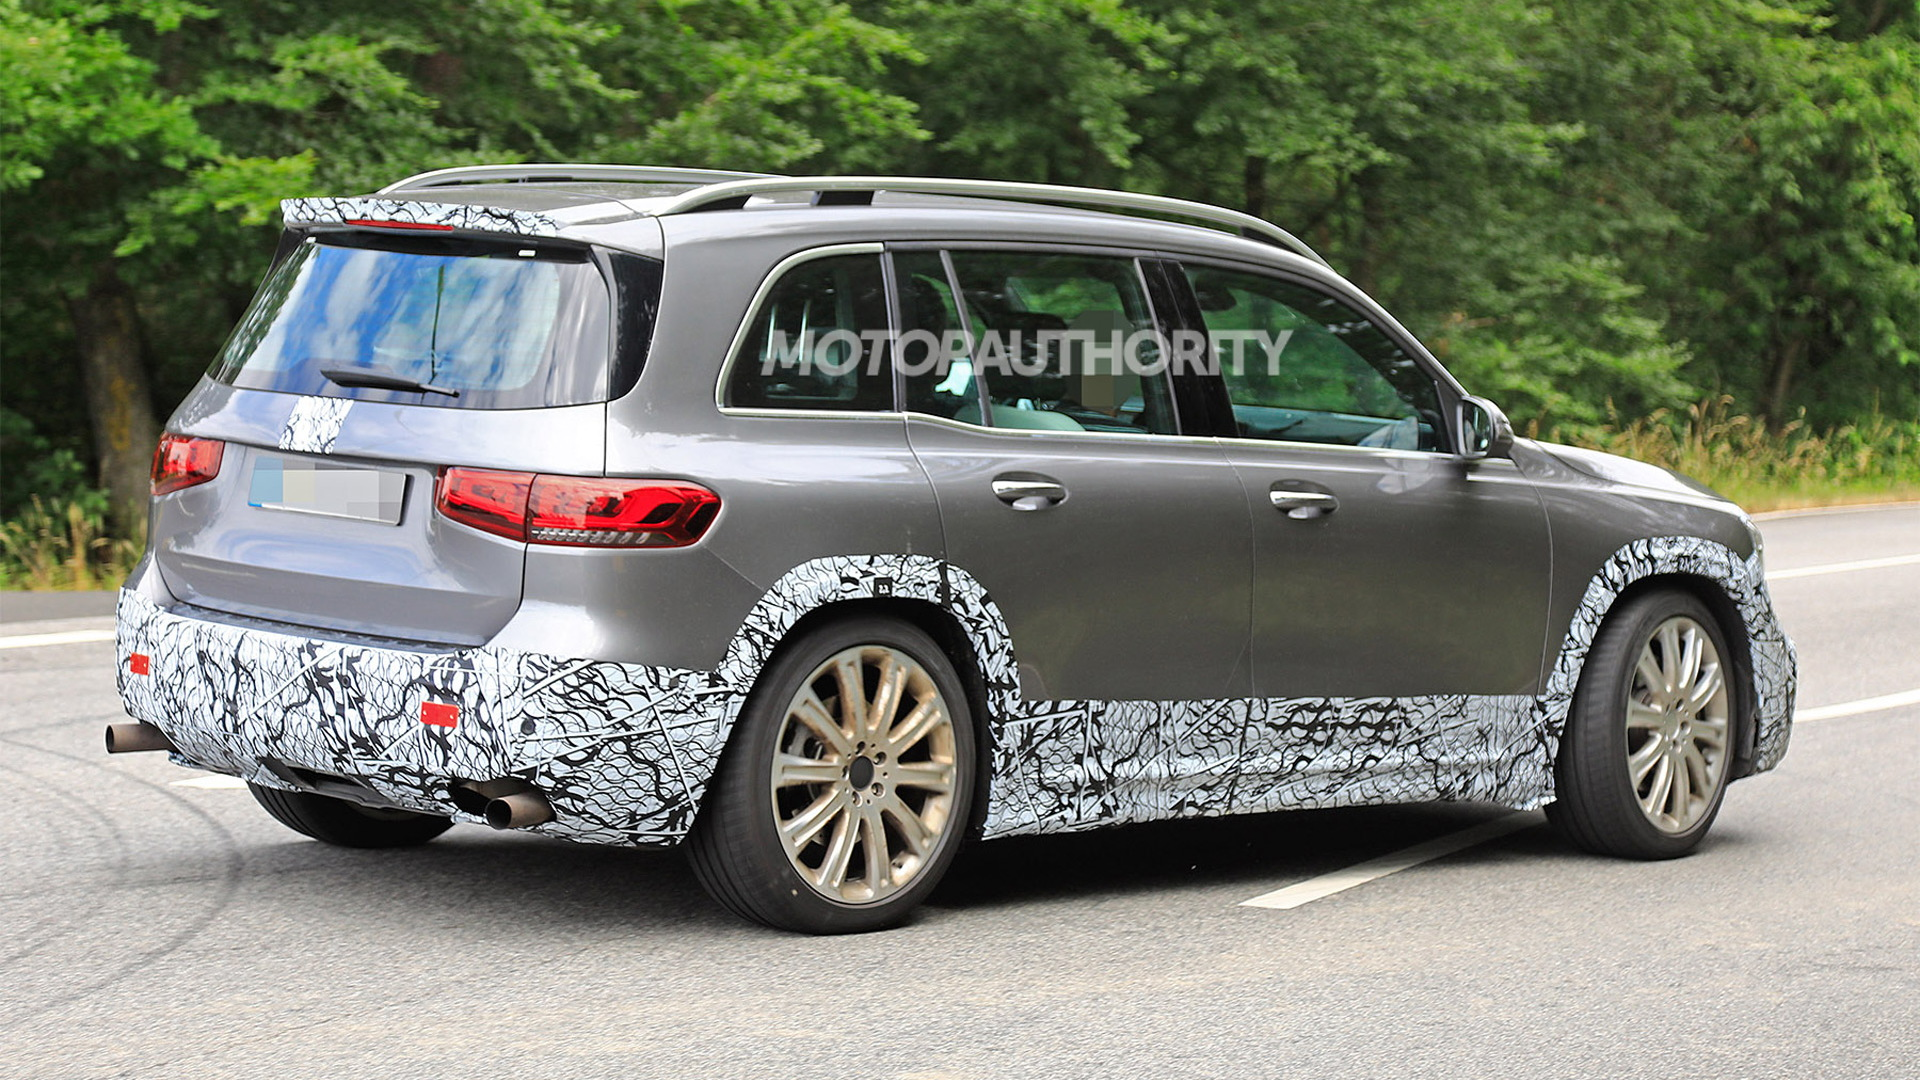 2021 Mercedes-AMG GLB45 spy shots - Photo credit: S. Baldauf/SB-Medien